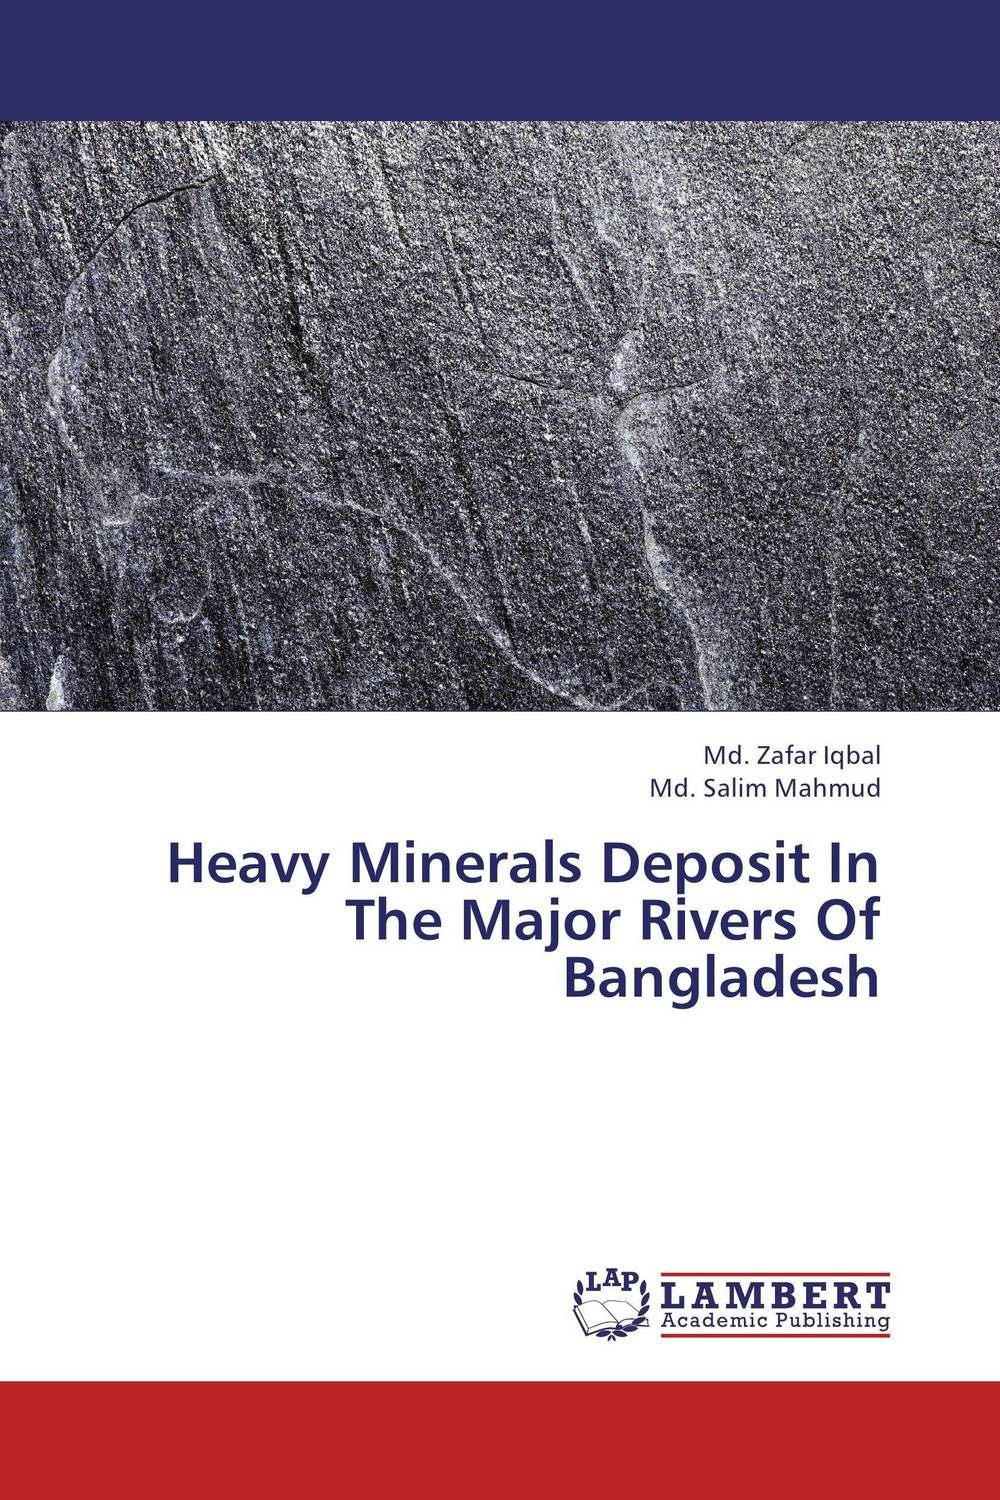 Heavy Minerals Deposit In The Major Rivers Of Bangladesh geodynamics and ore deposit evolution in europe